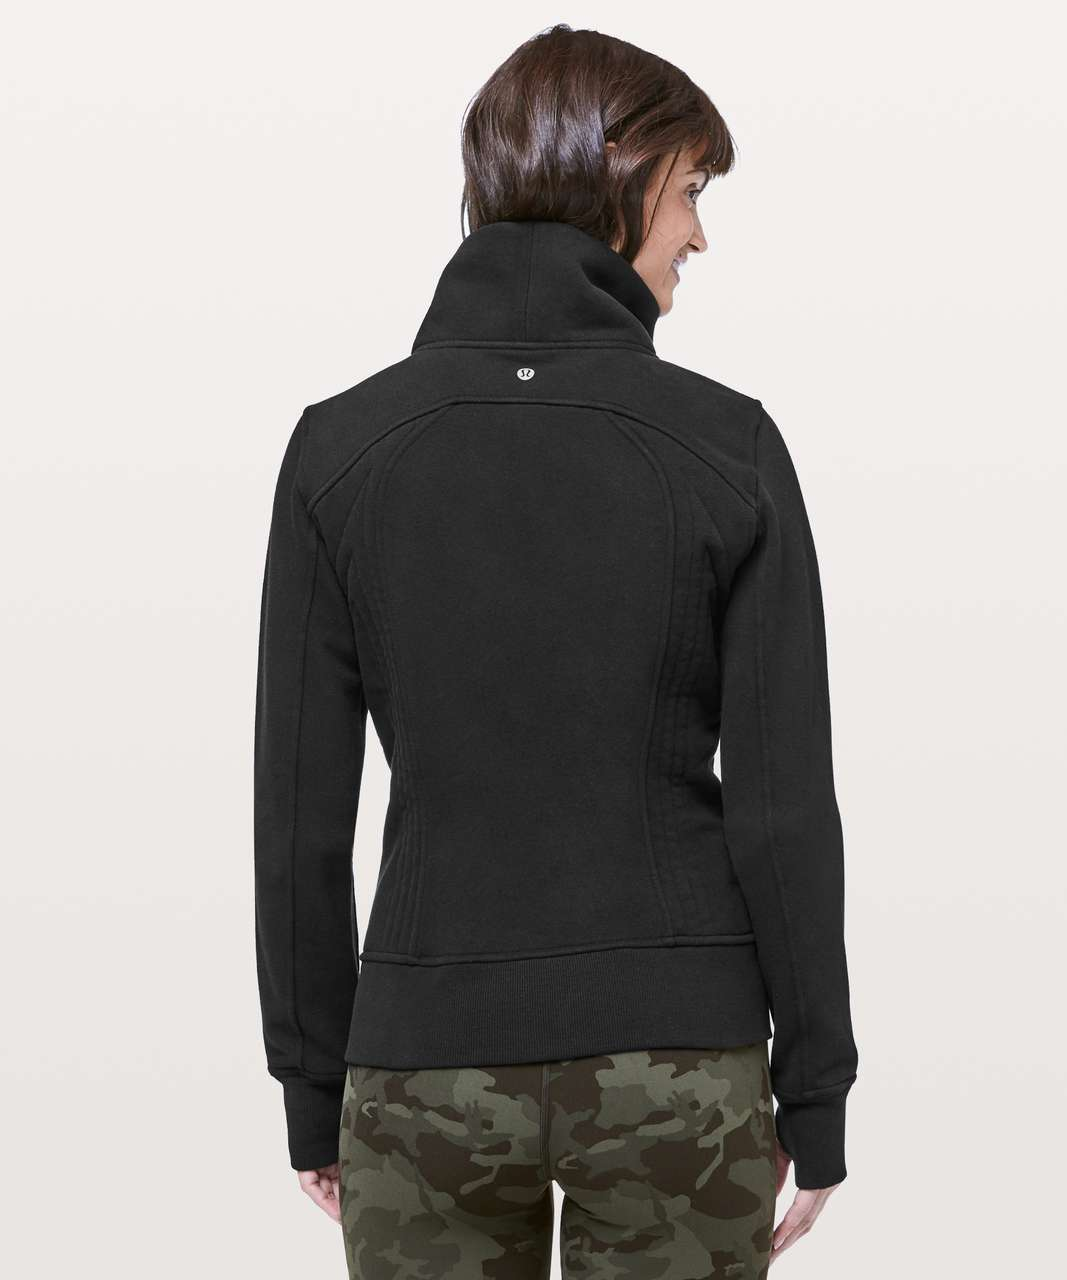 Lululemon Moving Meditation Jacket - Black